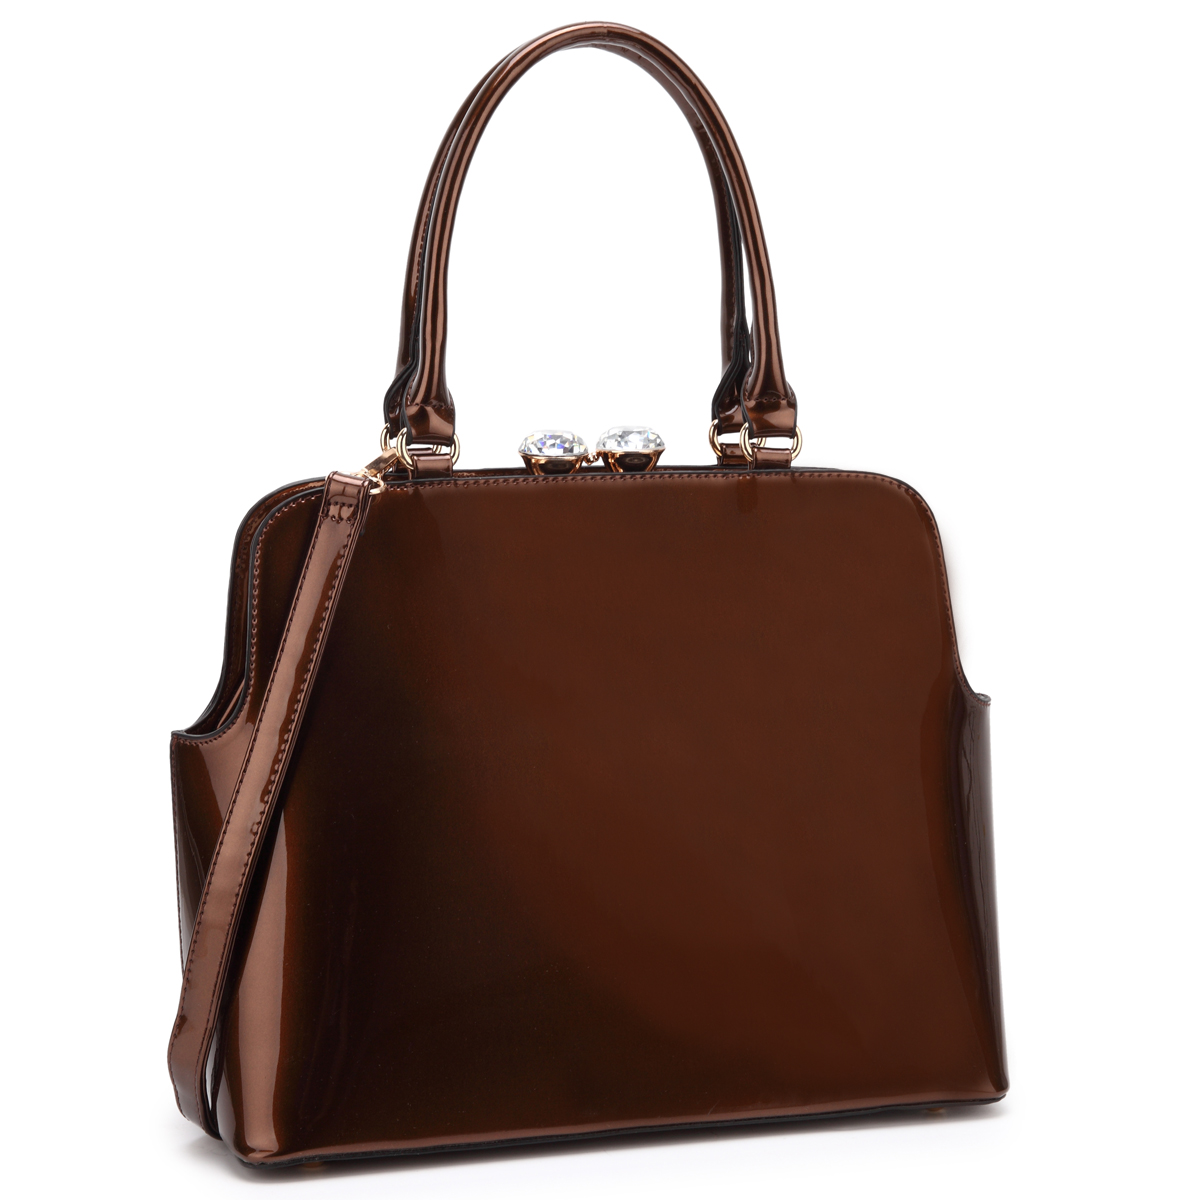 Dasein Patent Leather Satchel with Top Kiss Lock Snap Closure